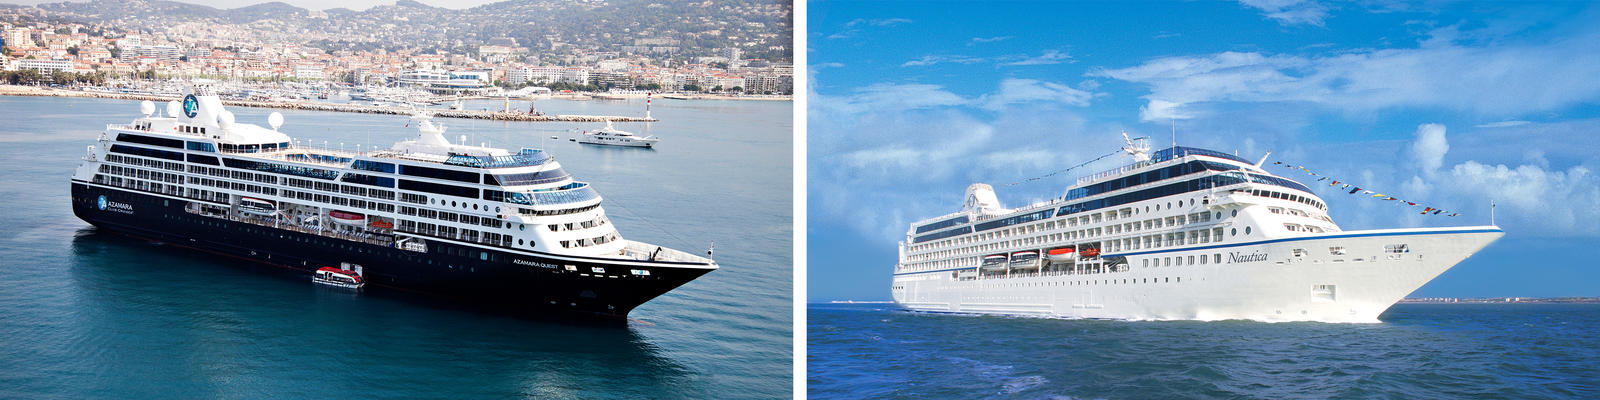 Azamara vs. Oceania (Photo: Azamara & Oceania)